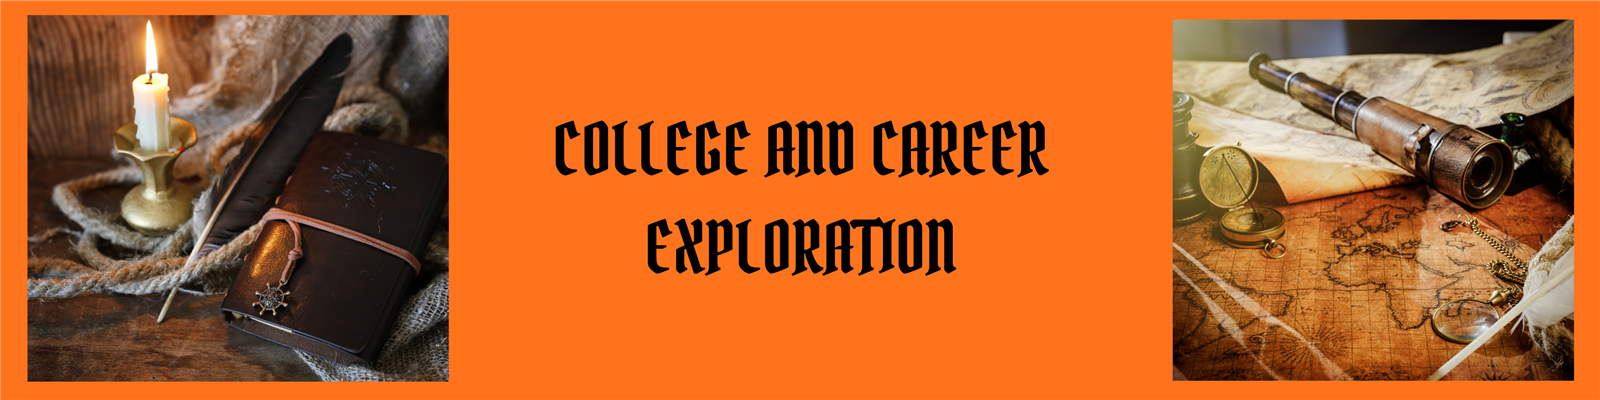 College and Career Exploration Banner